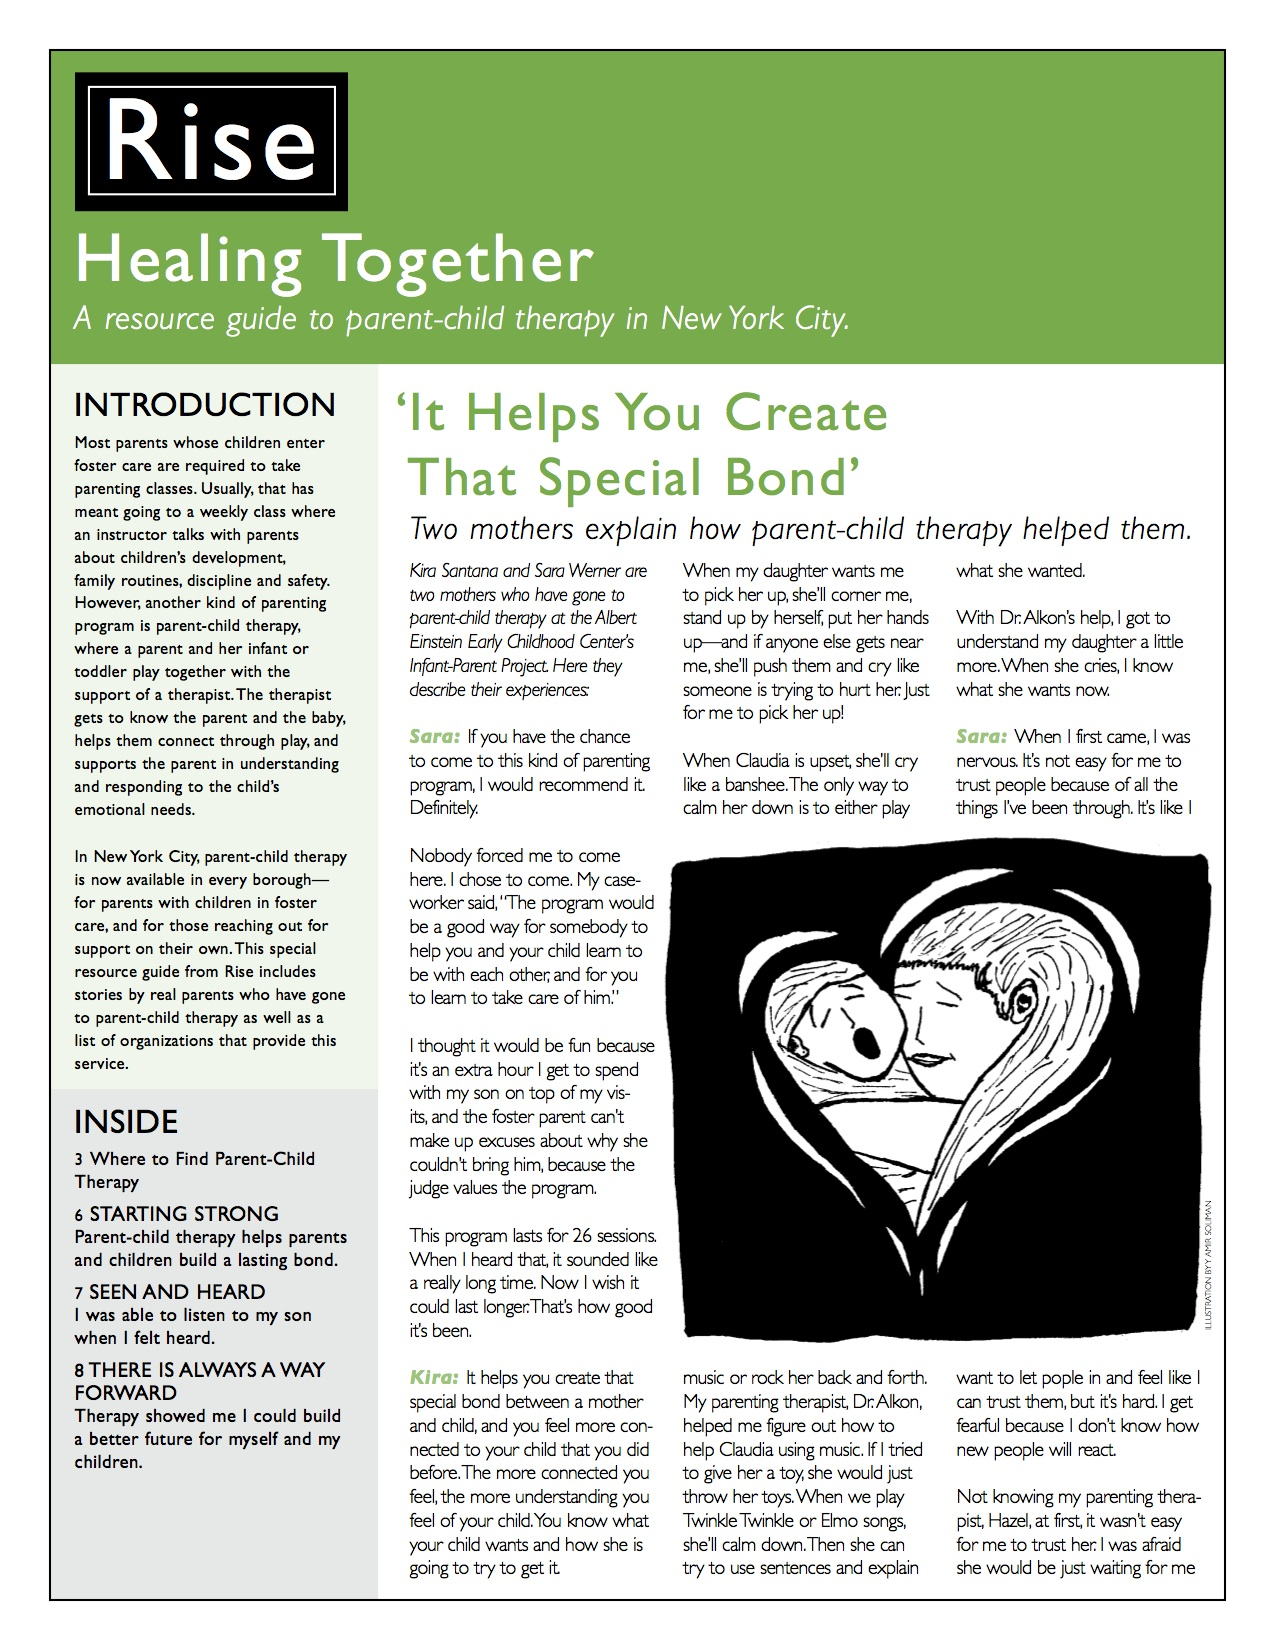 Healing Together: A Parent-Child Therapy Resource Guide product image